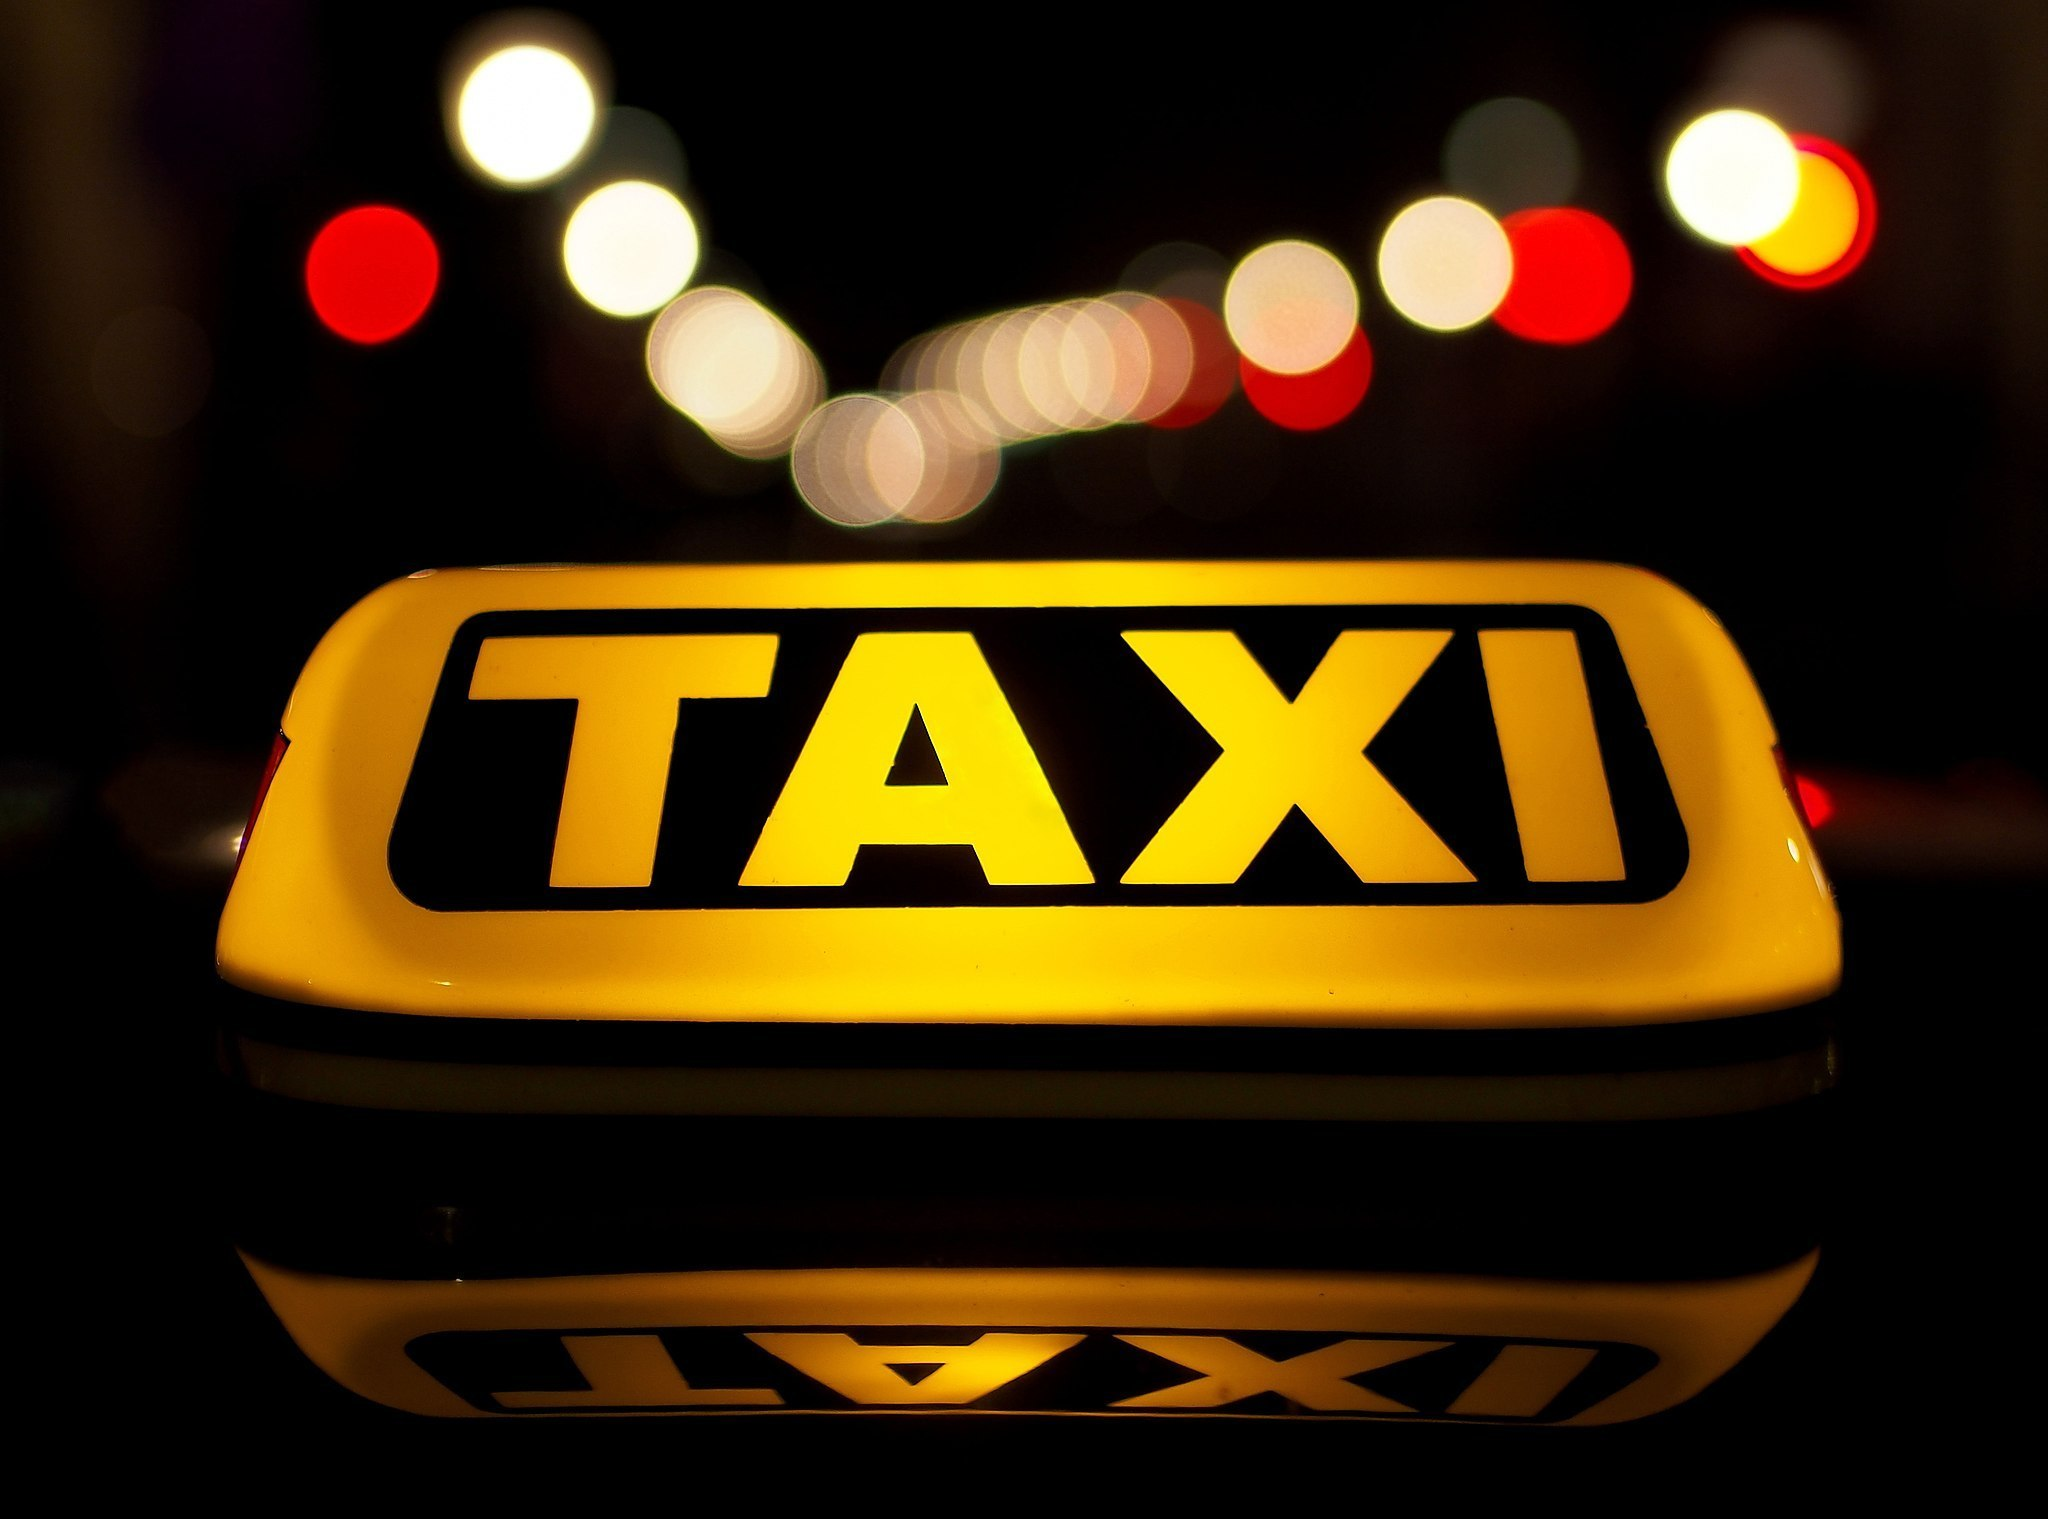 There is to be a consultation on taxi seat sizes with manufacturers